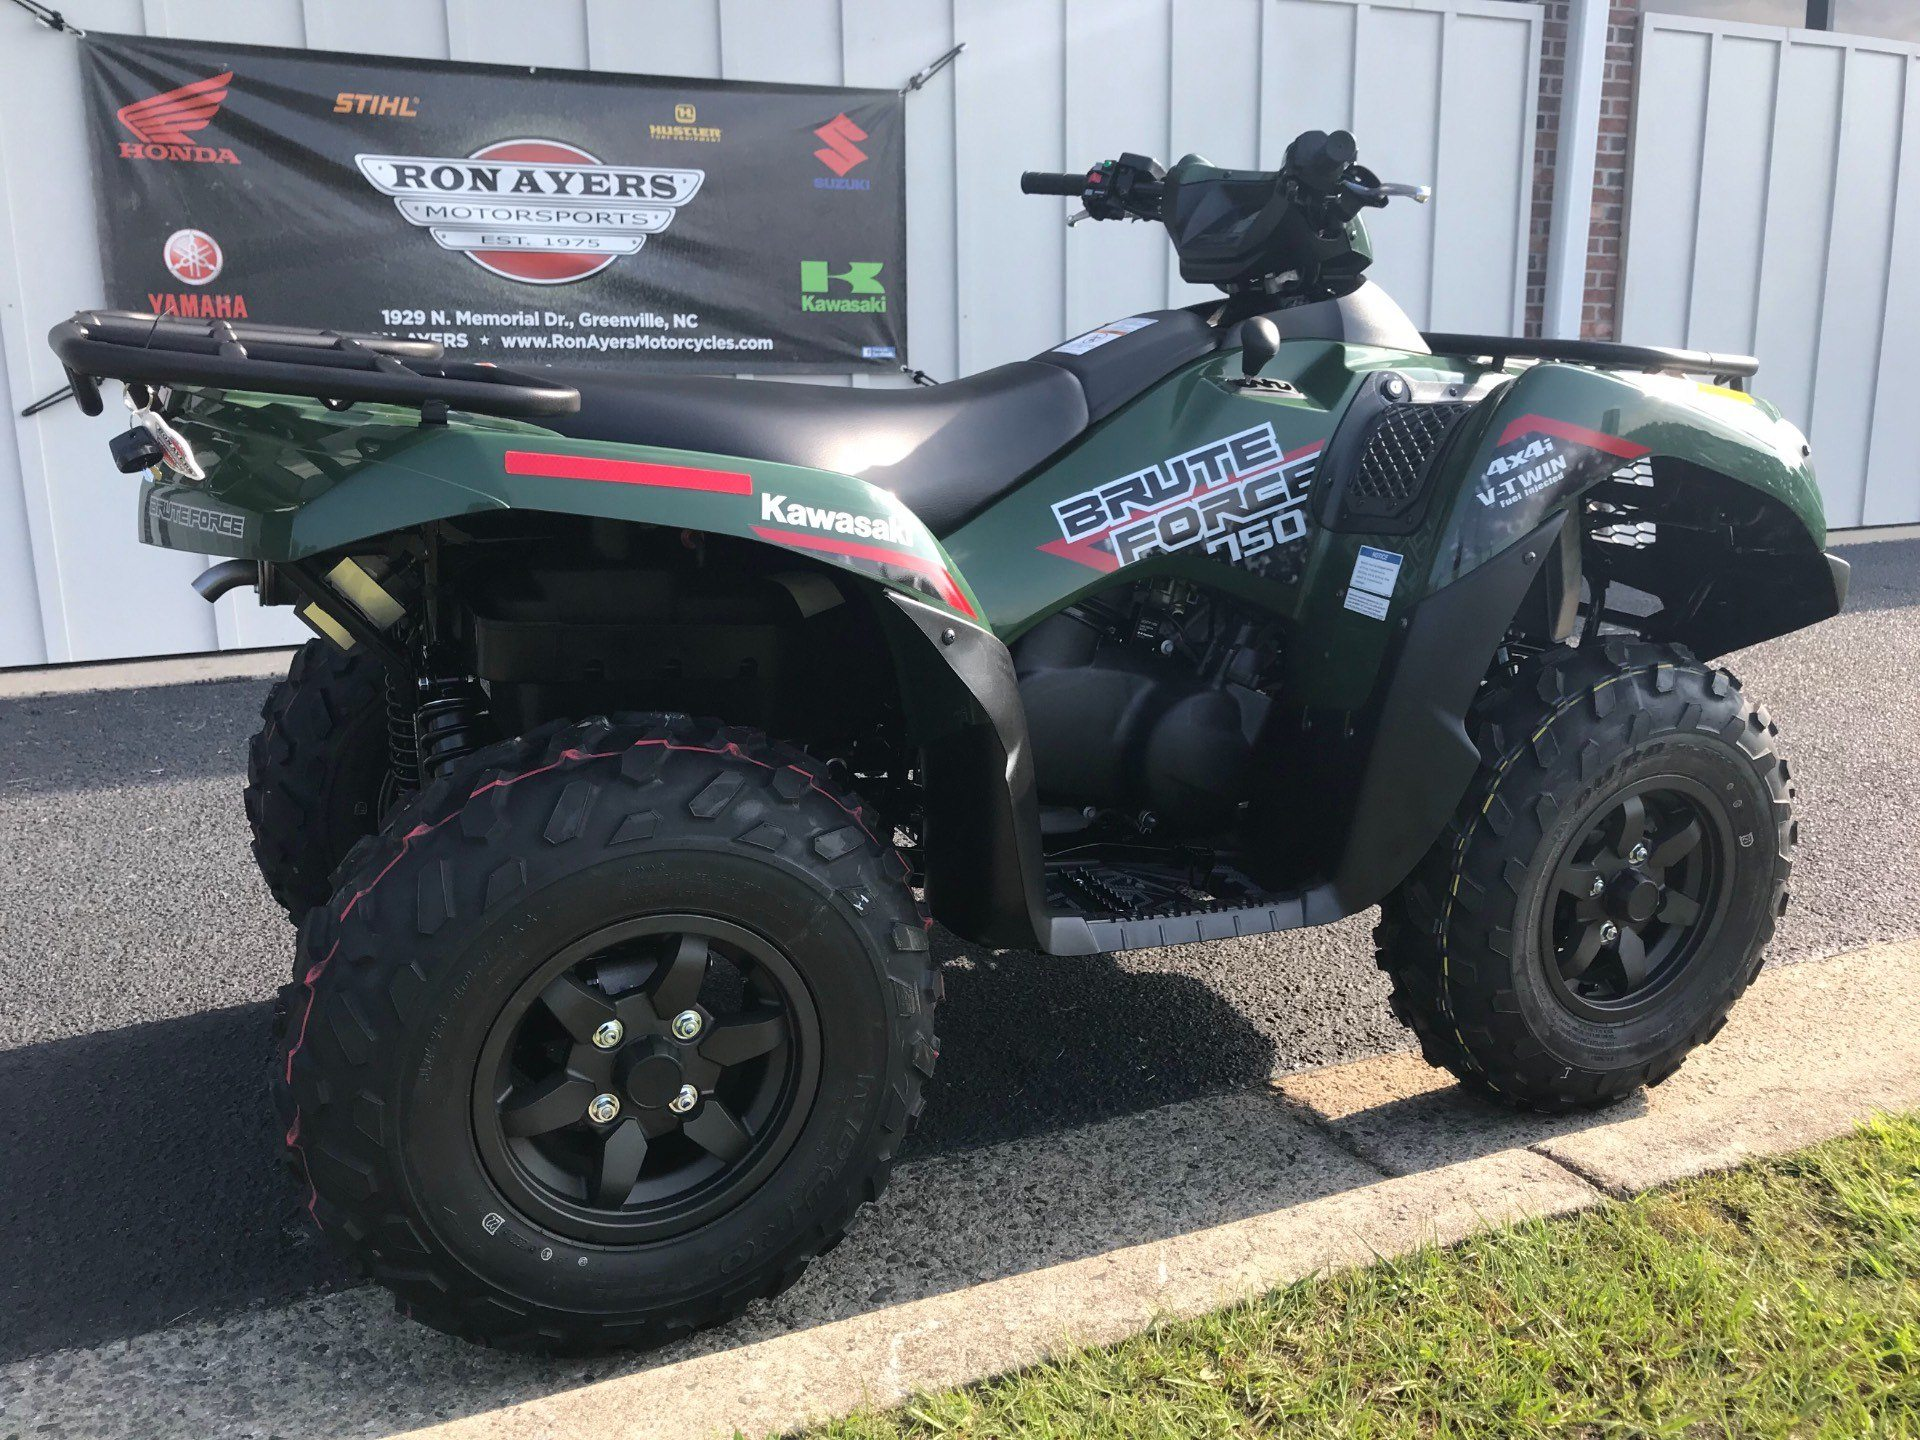 2019 Kawasaki Brute Force 750 4x4i in Greenville, North Carolina - Photo 11